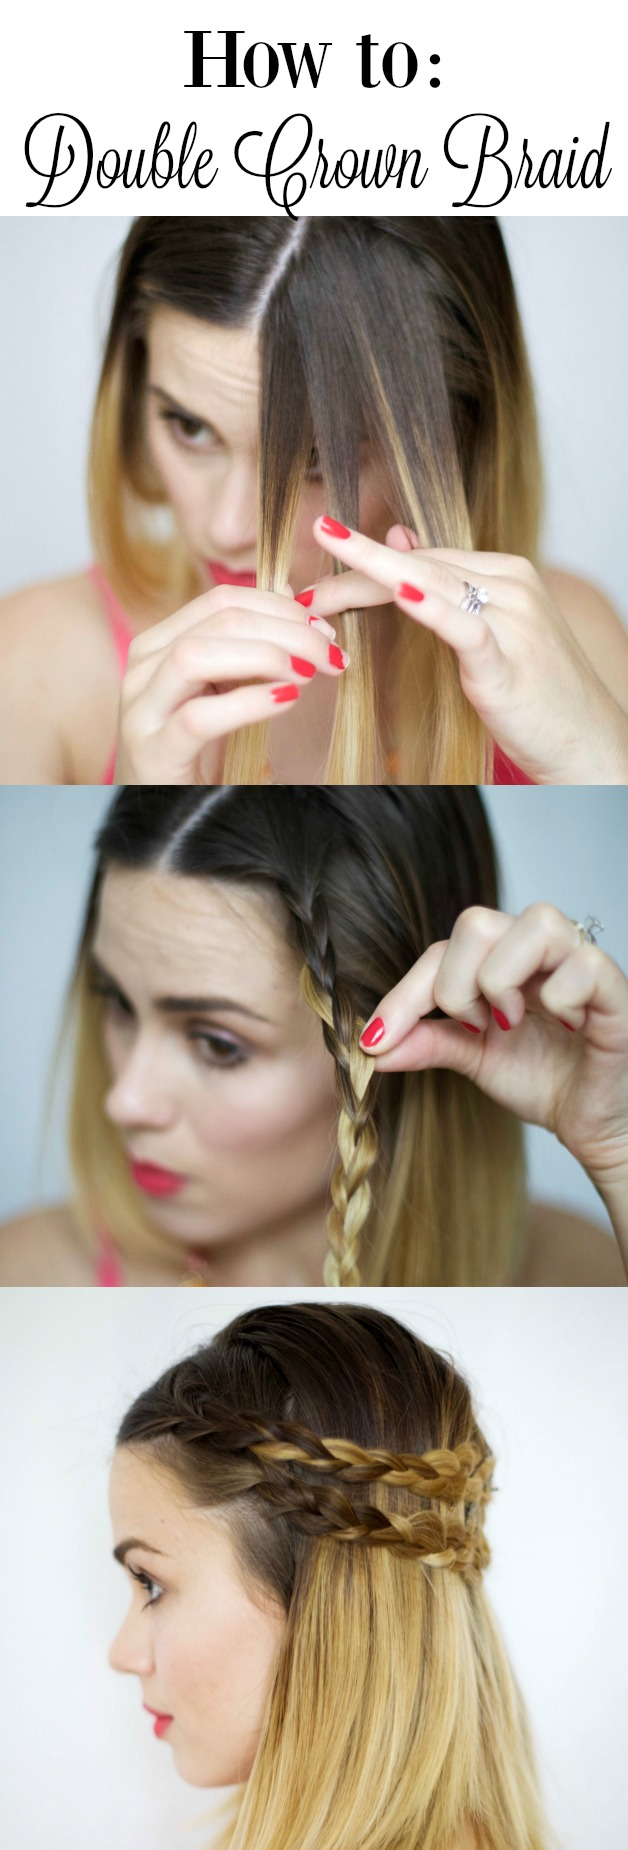 how to do a double crown braid